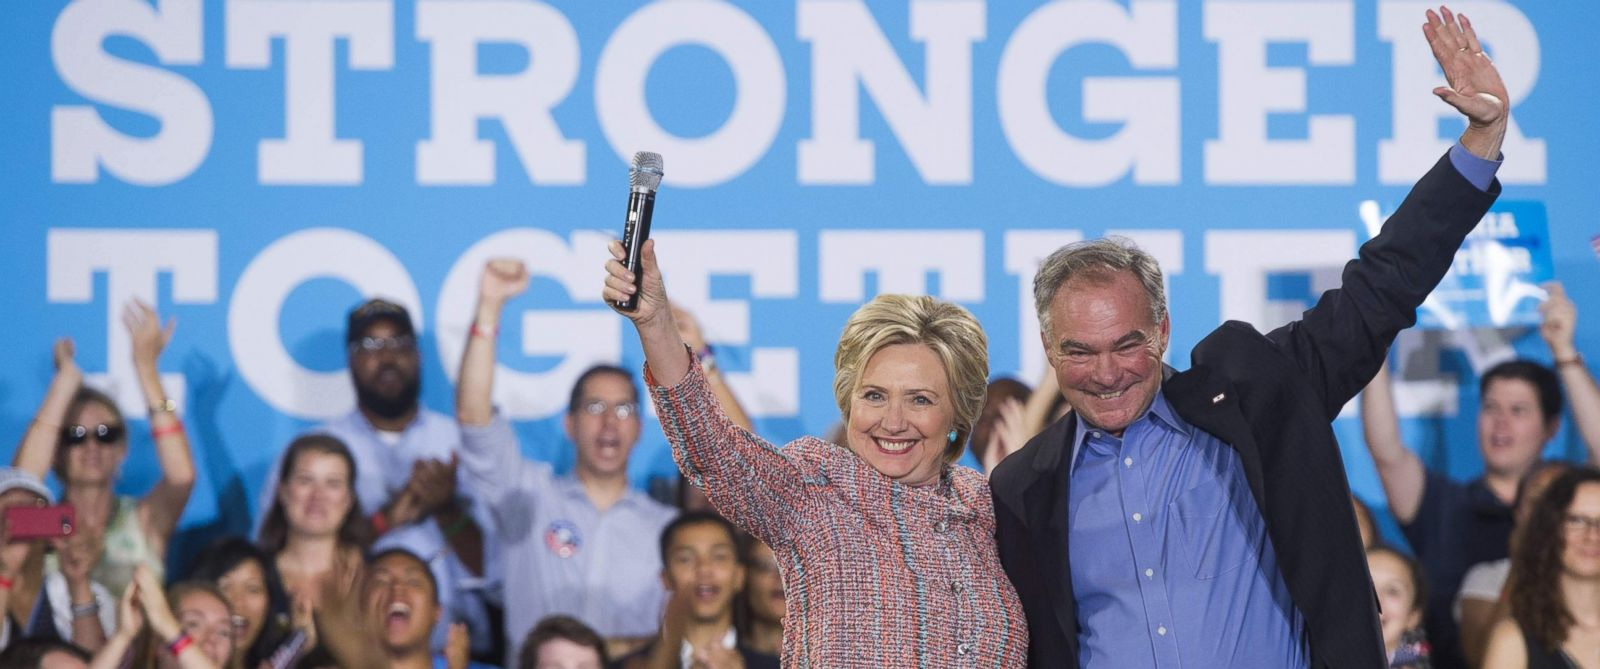 Hillary Clinton and Tim Kaine Raised More Than $154 Million in September for HFA and the Democratic Party